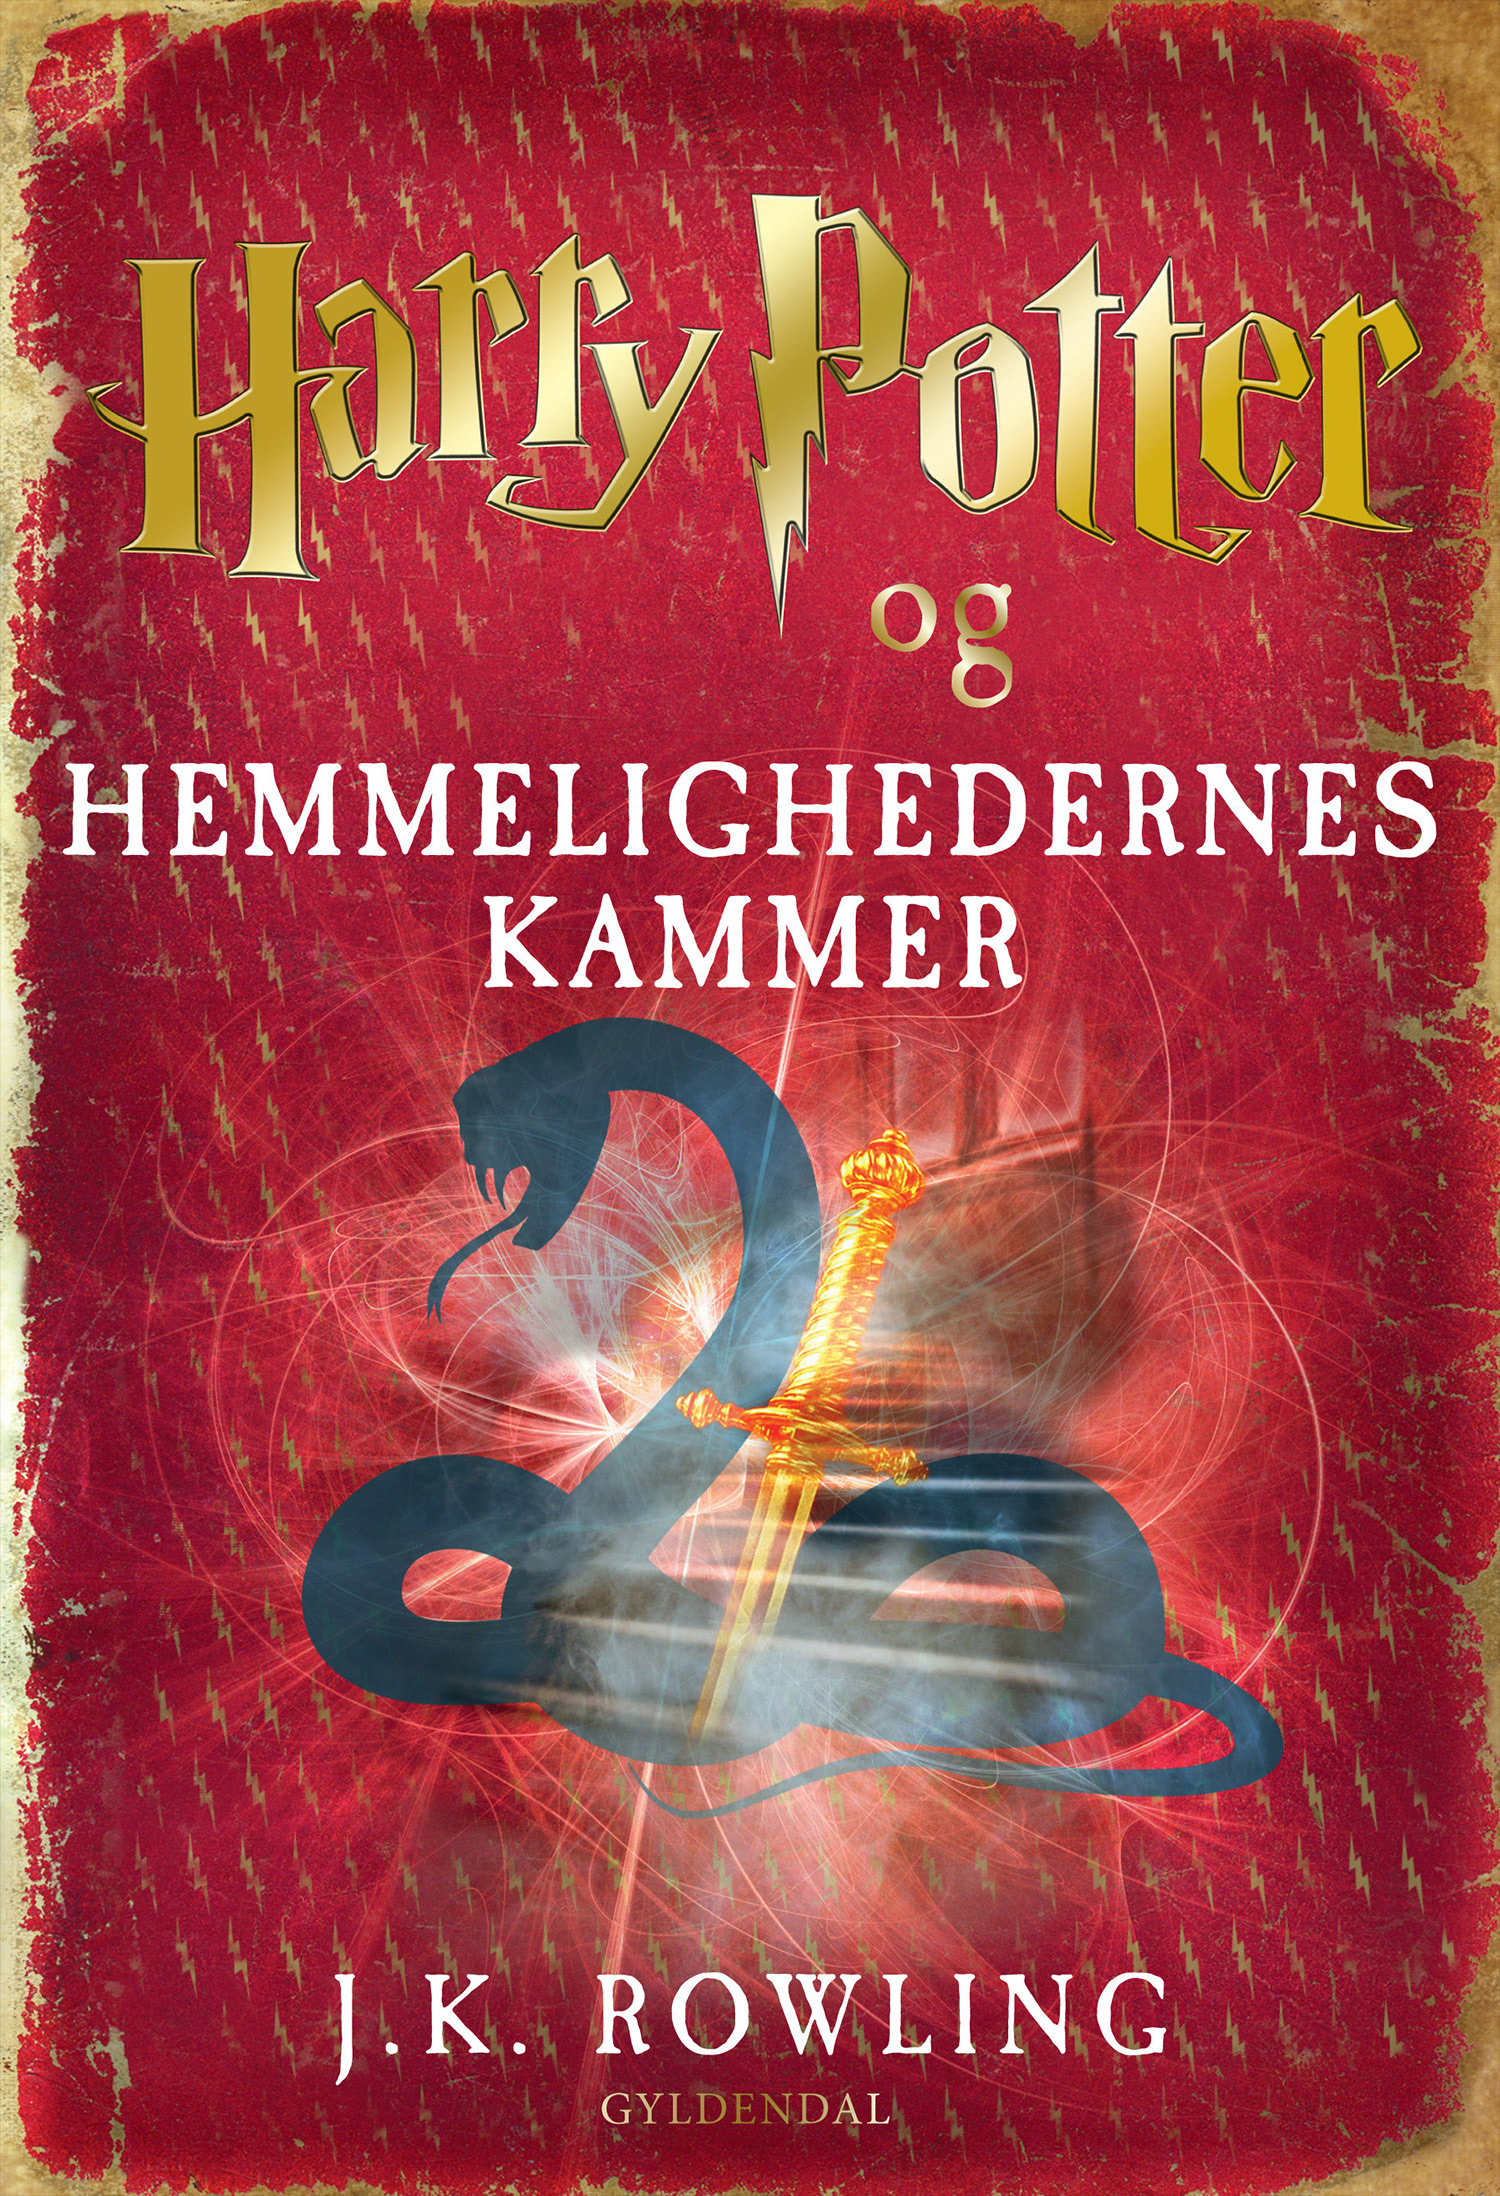 'Chamber of Secrets' Danish edition (2012)